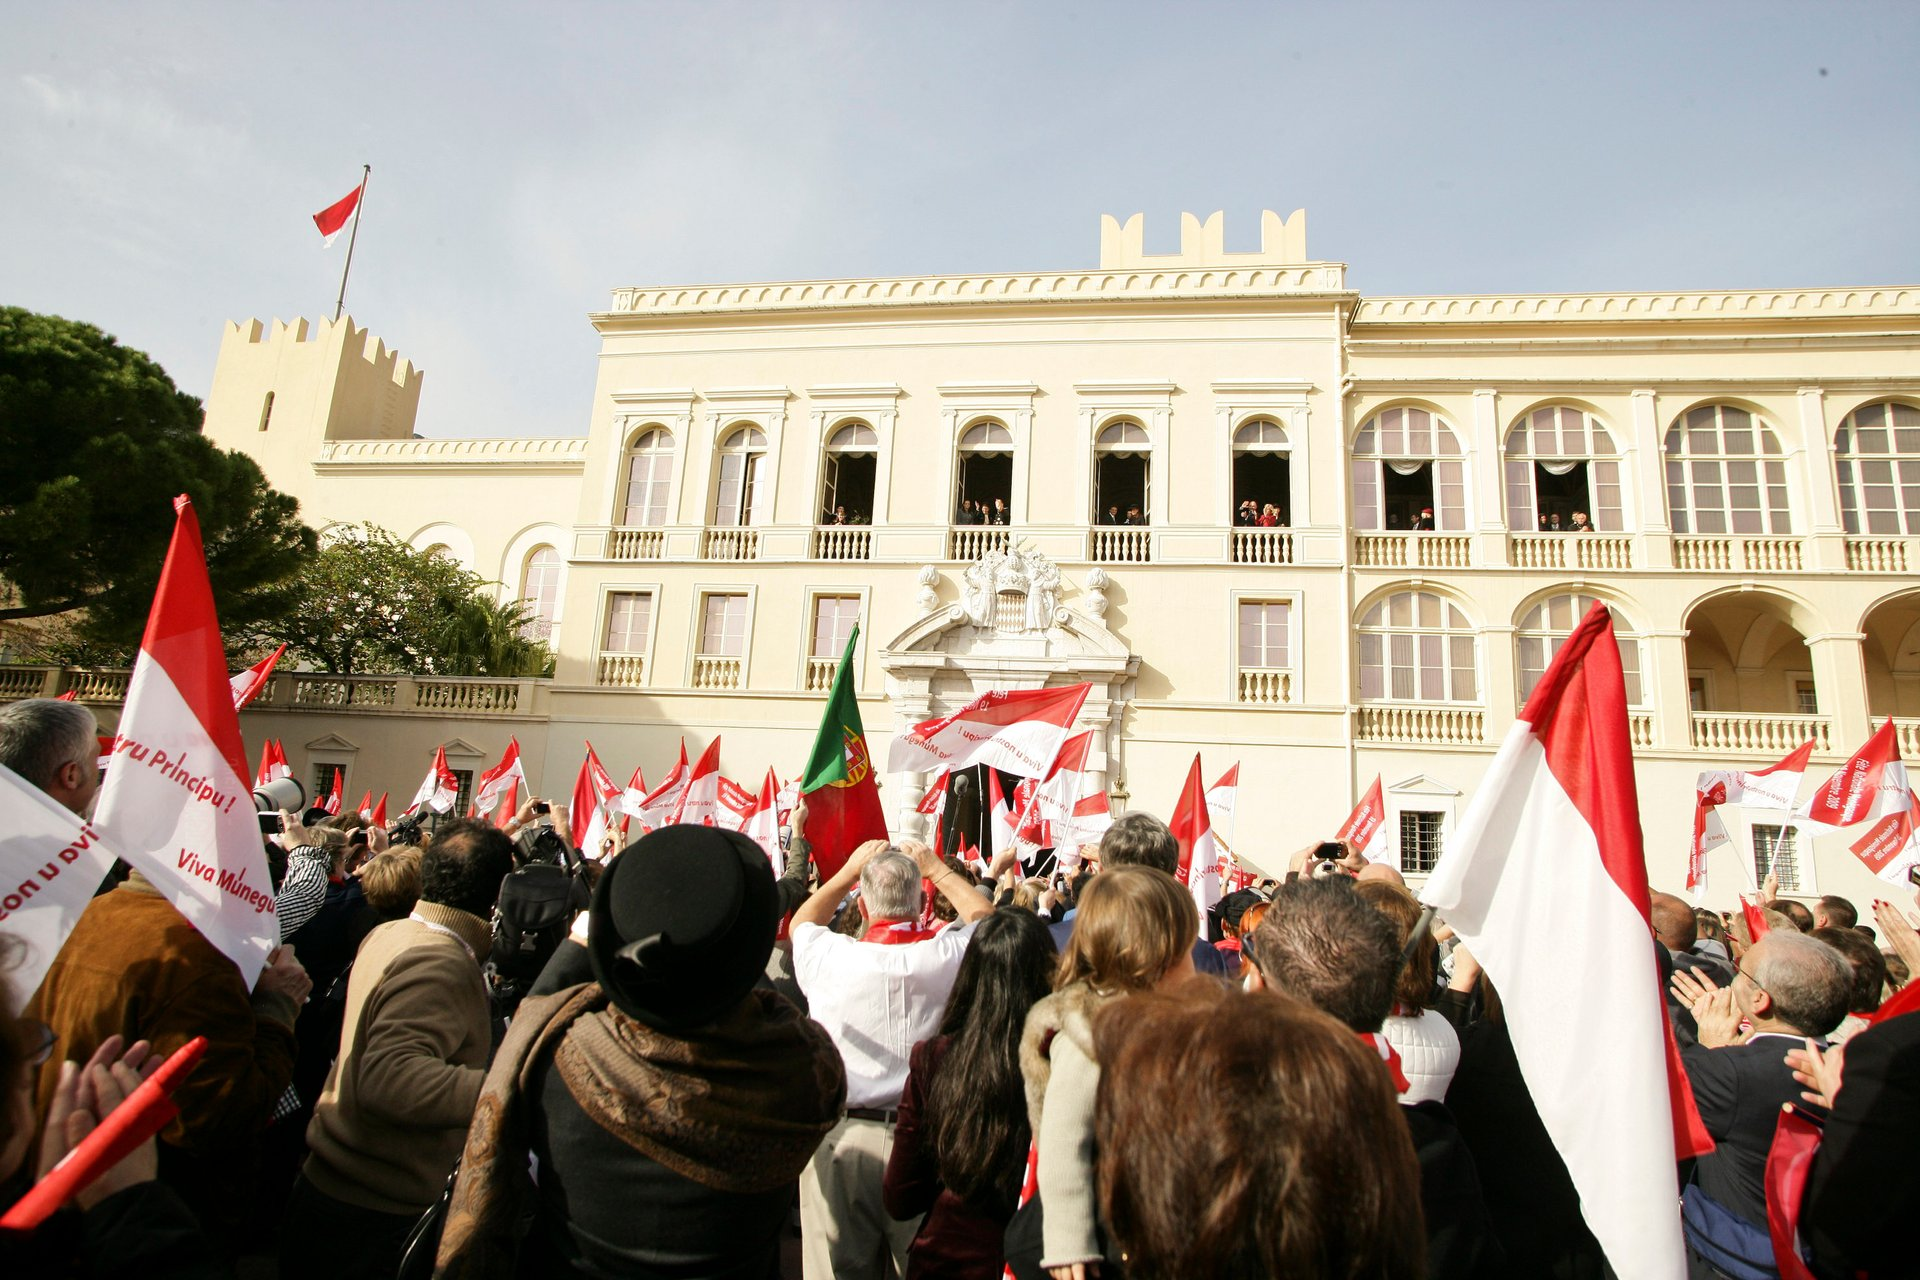 National Day of Monaco in Monaco - Best Season